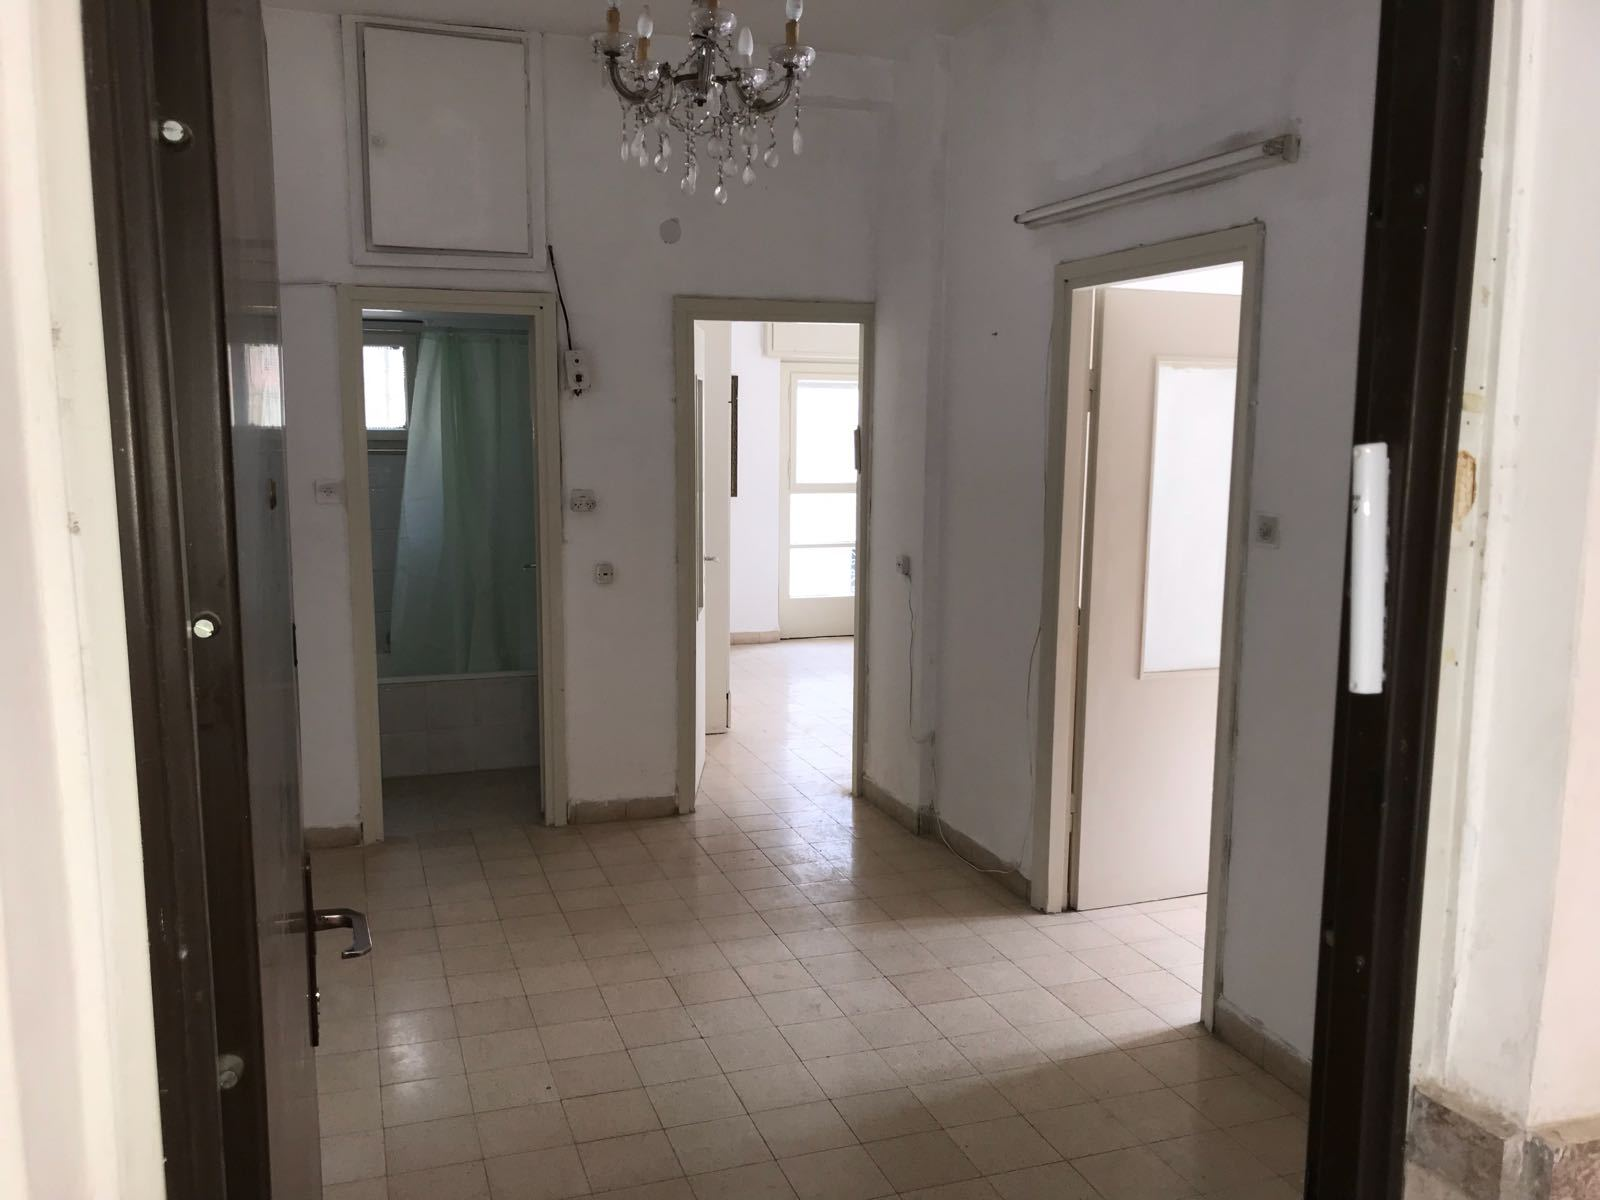 Real Estate Israel - Jerusalem Rehavia A beautiful, bright and spacious apartment on a quiet street, ground floor with no stairs at all. 4... Ben Zimra Real Estate